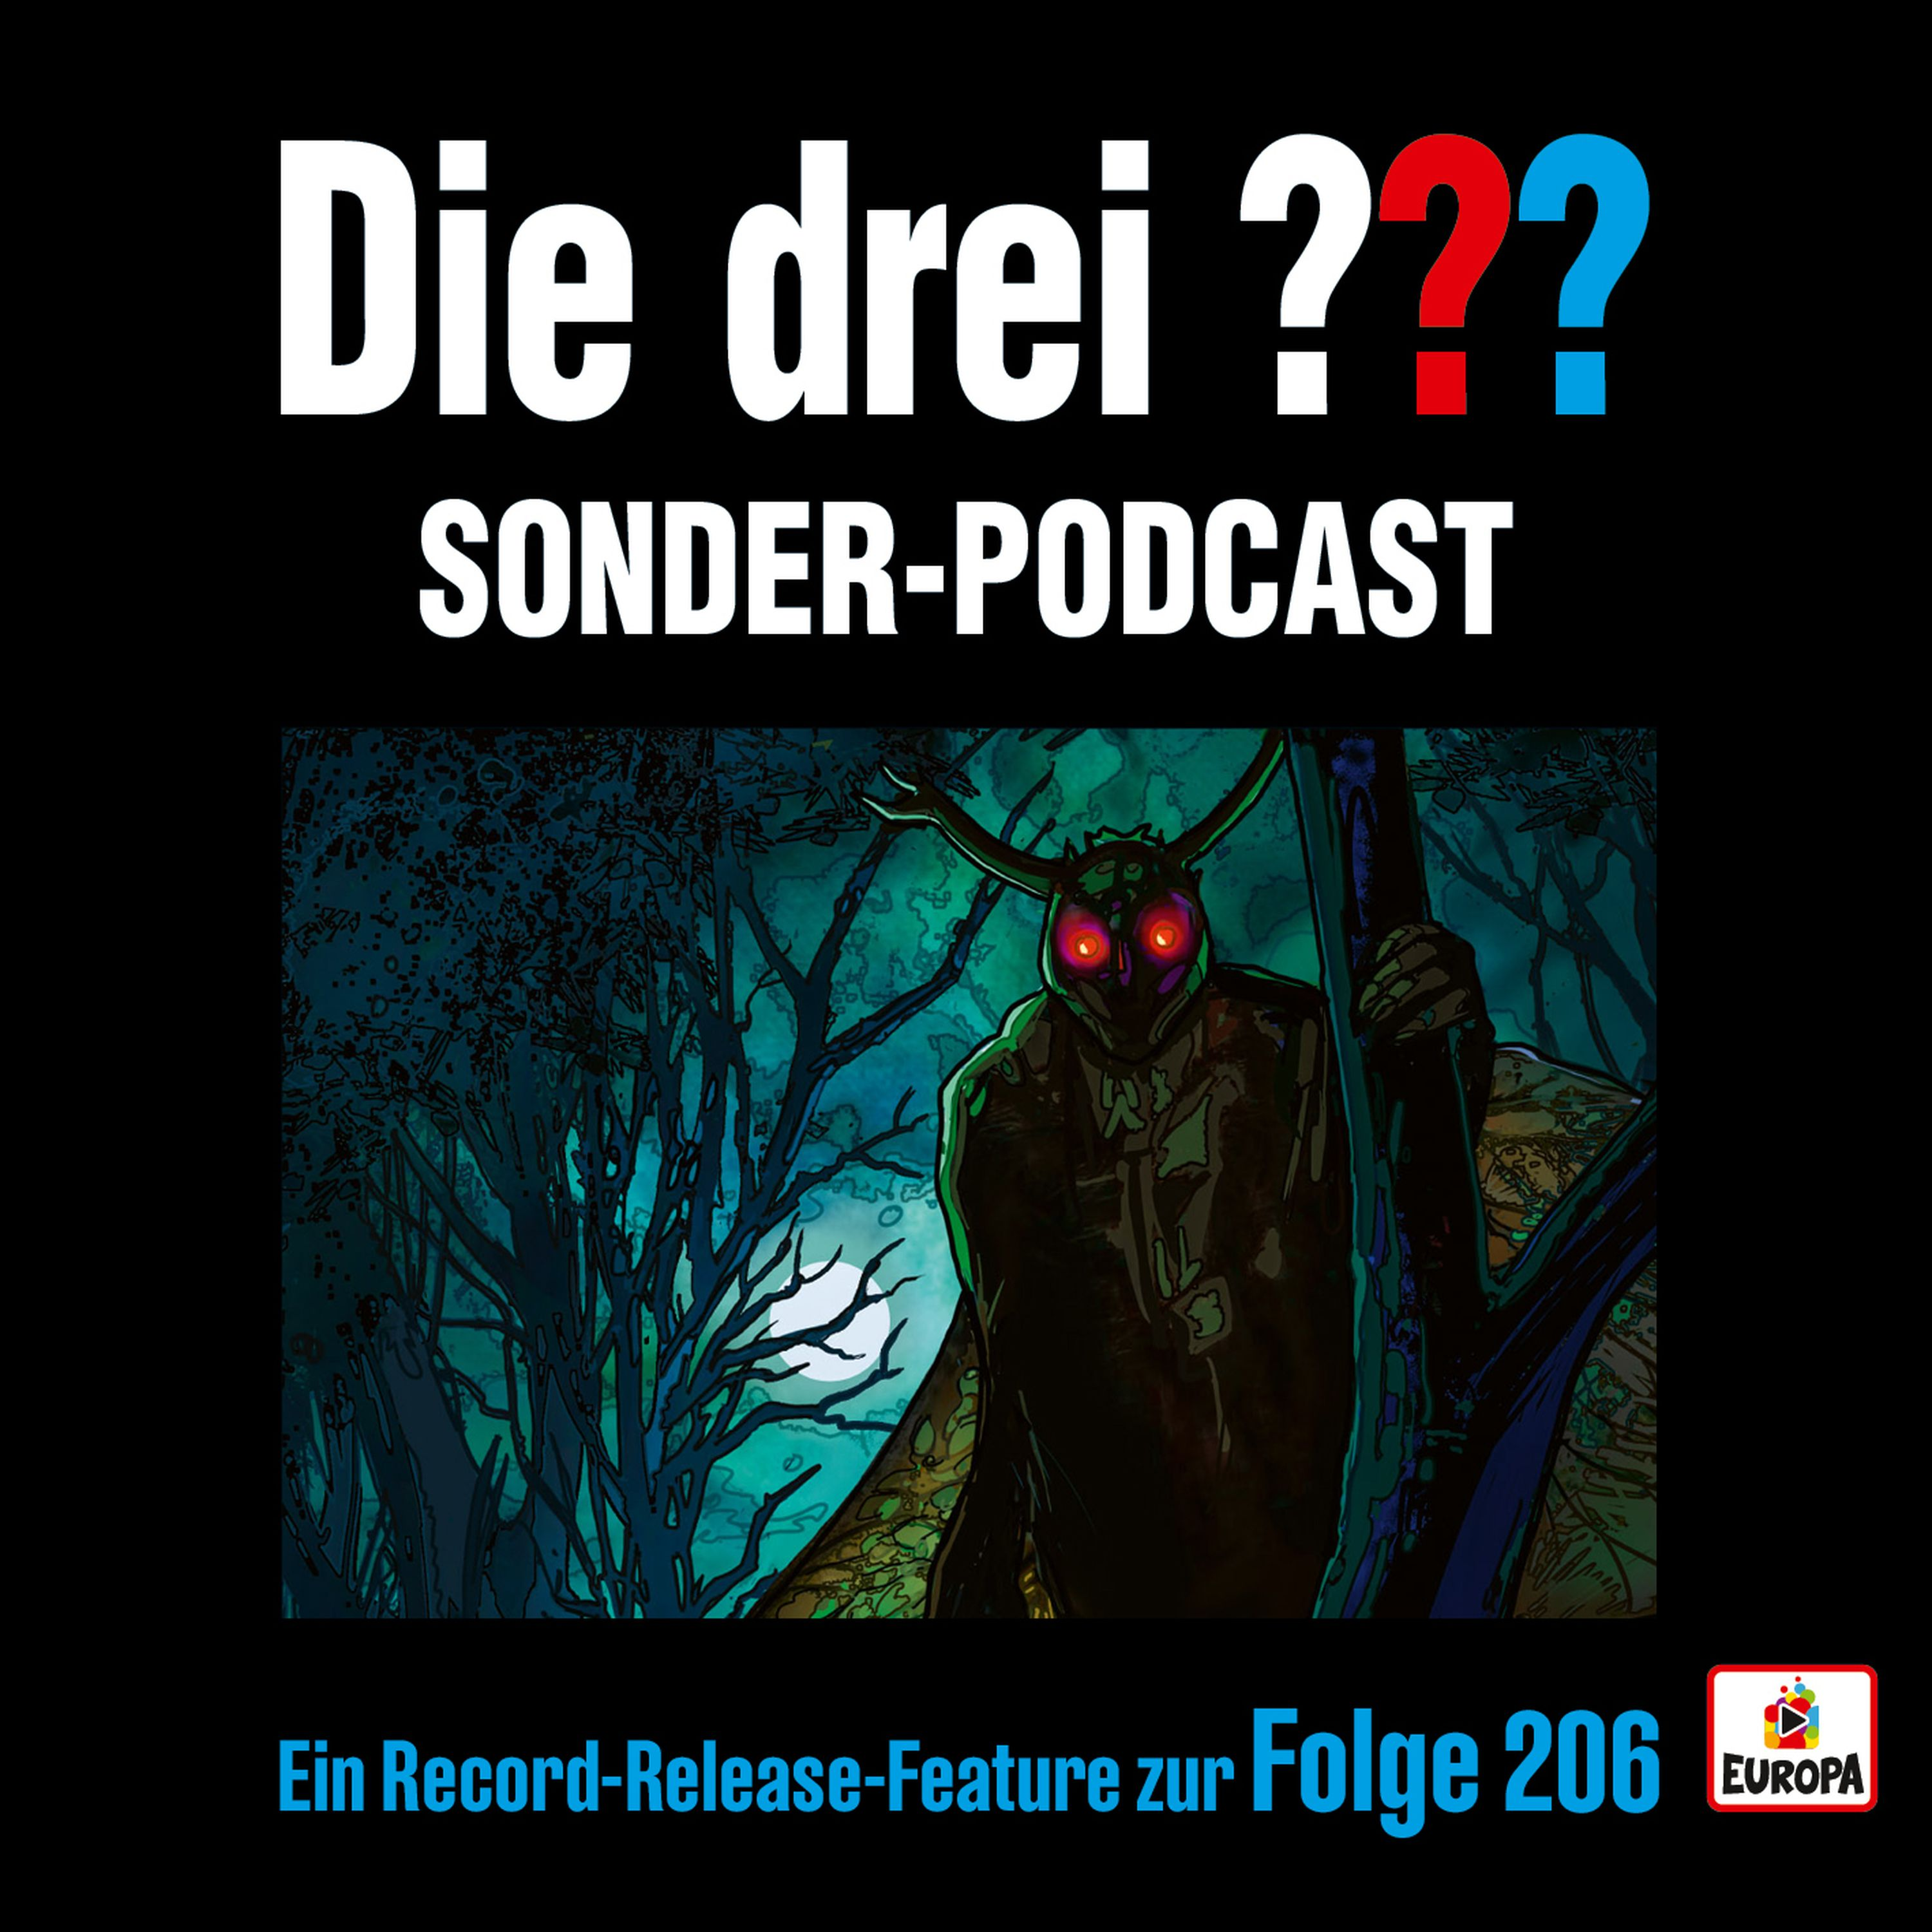 Record-Release-Feature zur Folge 206